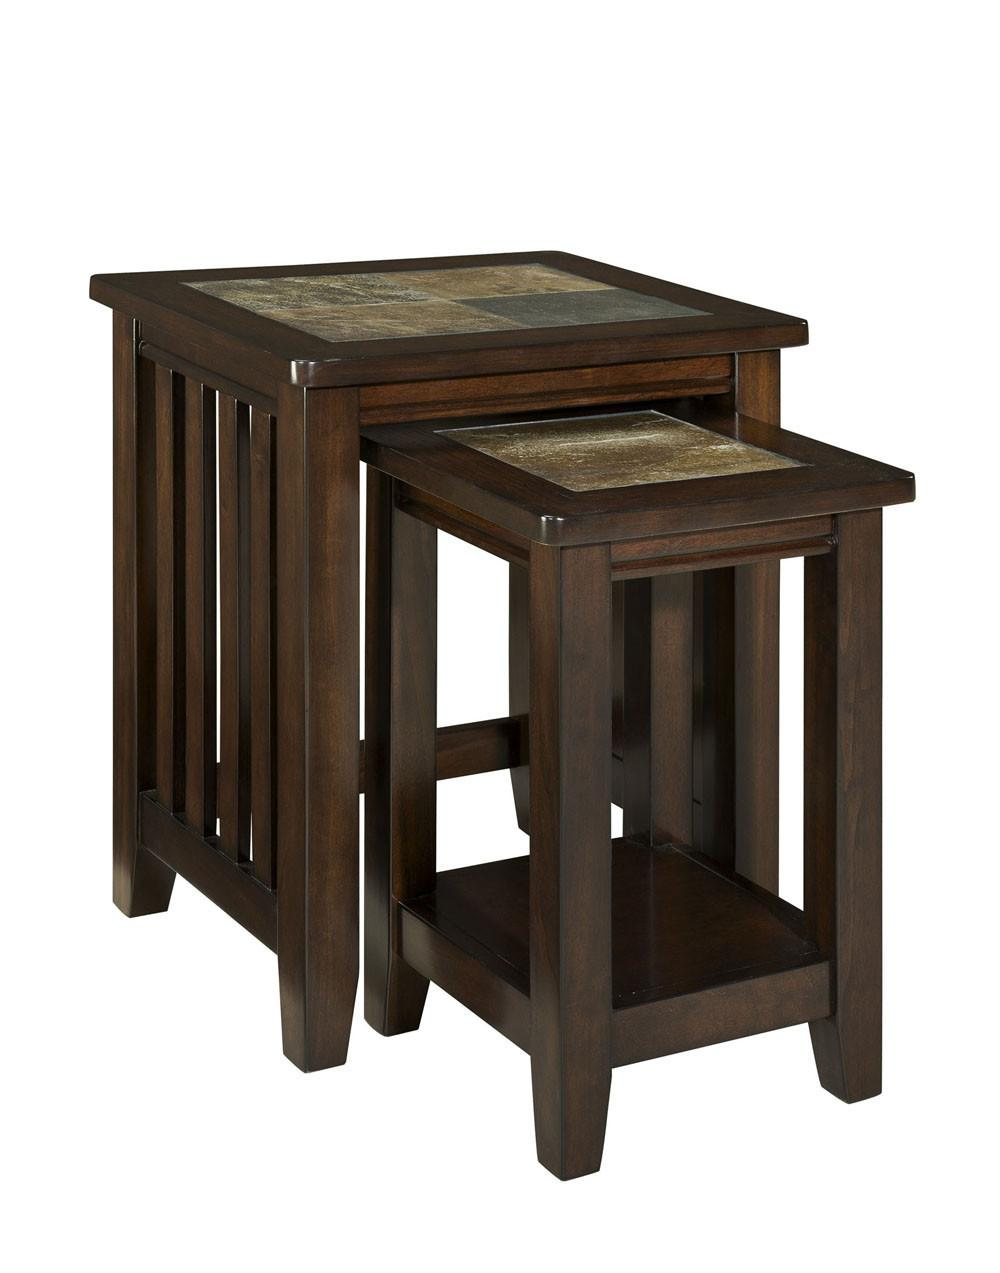 Standard Furniture Napa Valley Nesting Tables Beyond Stores